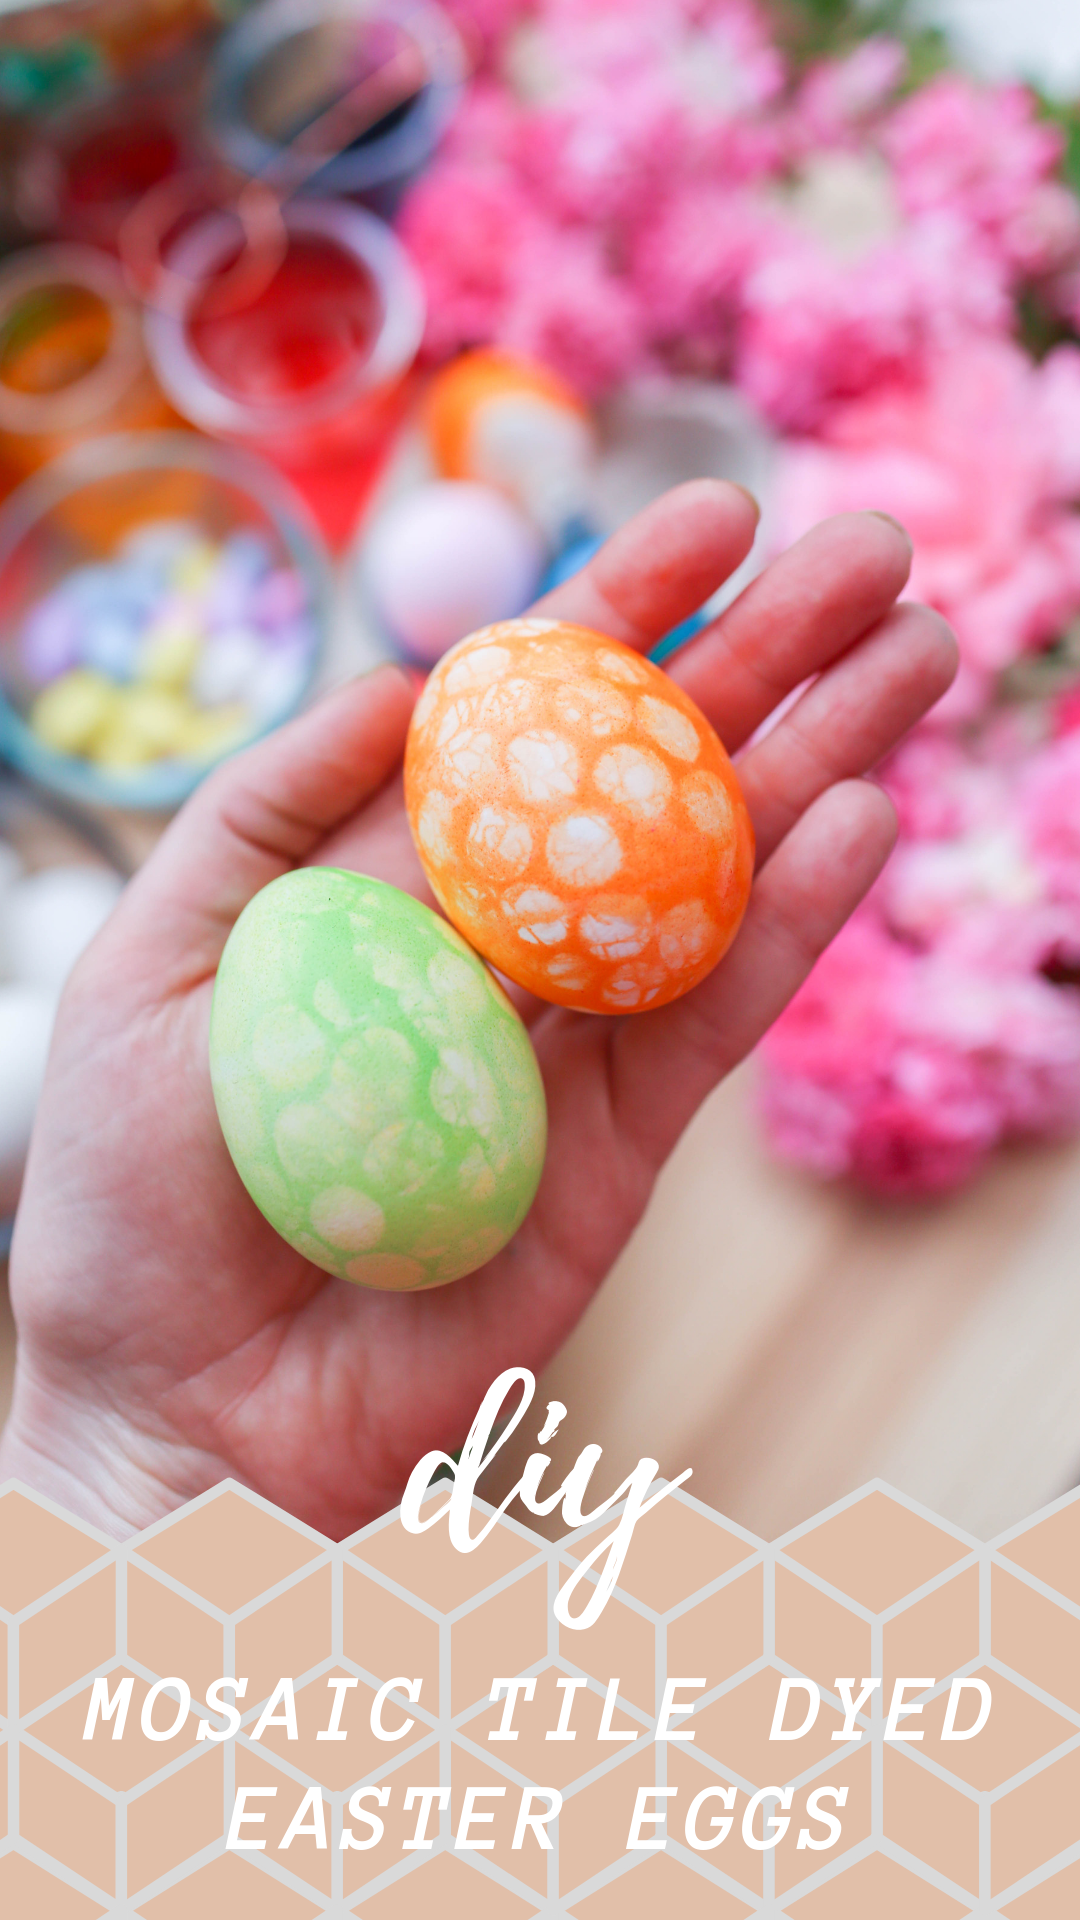 How to Make Mosaic Tile Easter Eggs.png